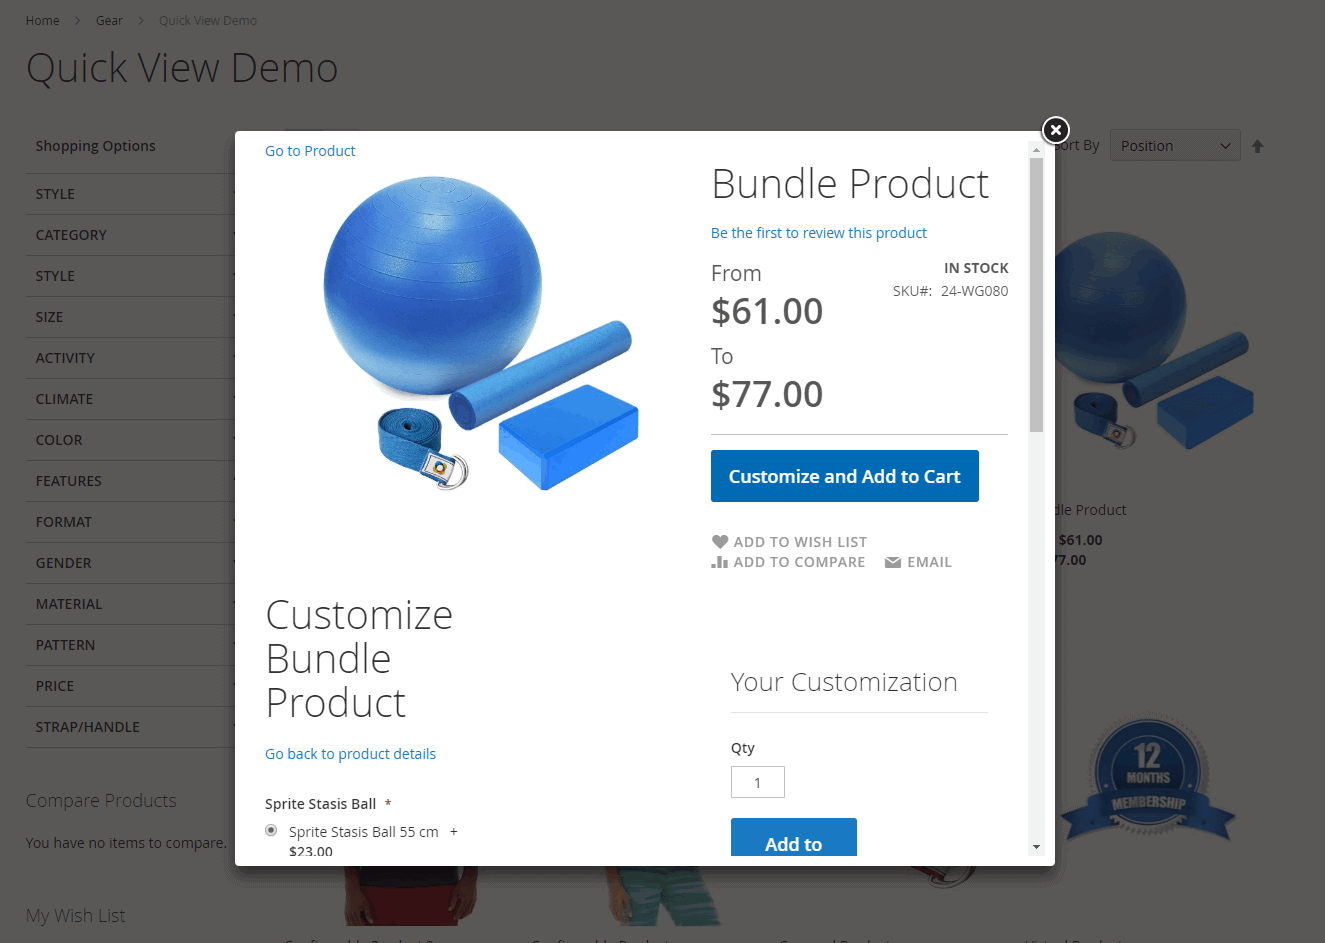 Quick View pop-up for bundle product in Magento 2